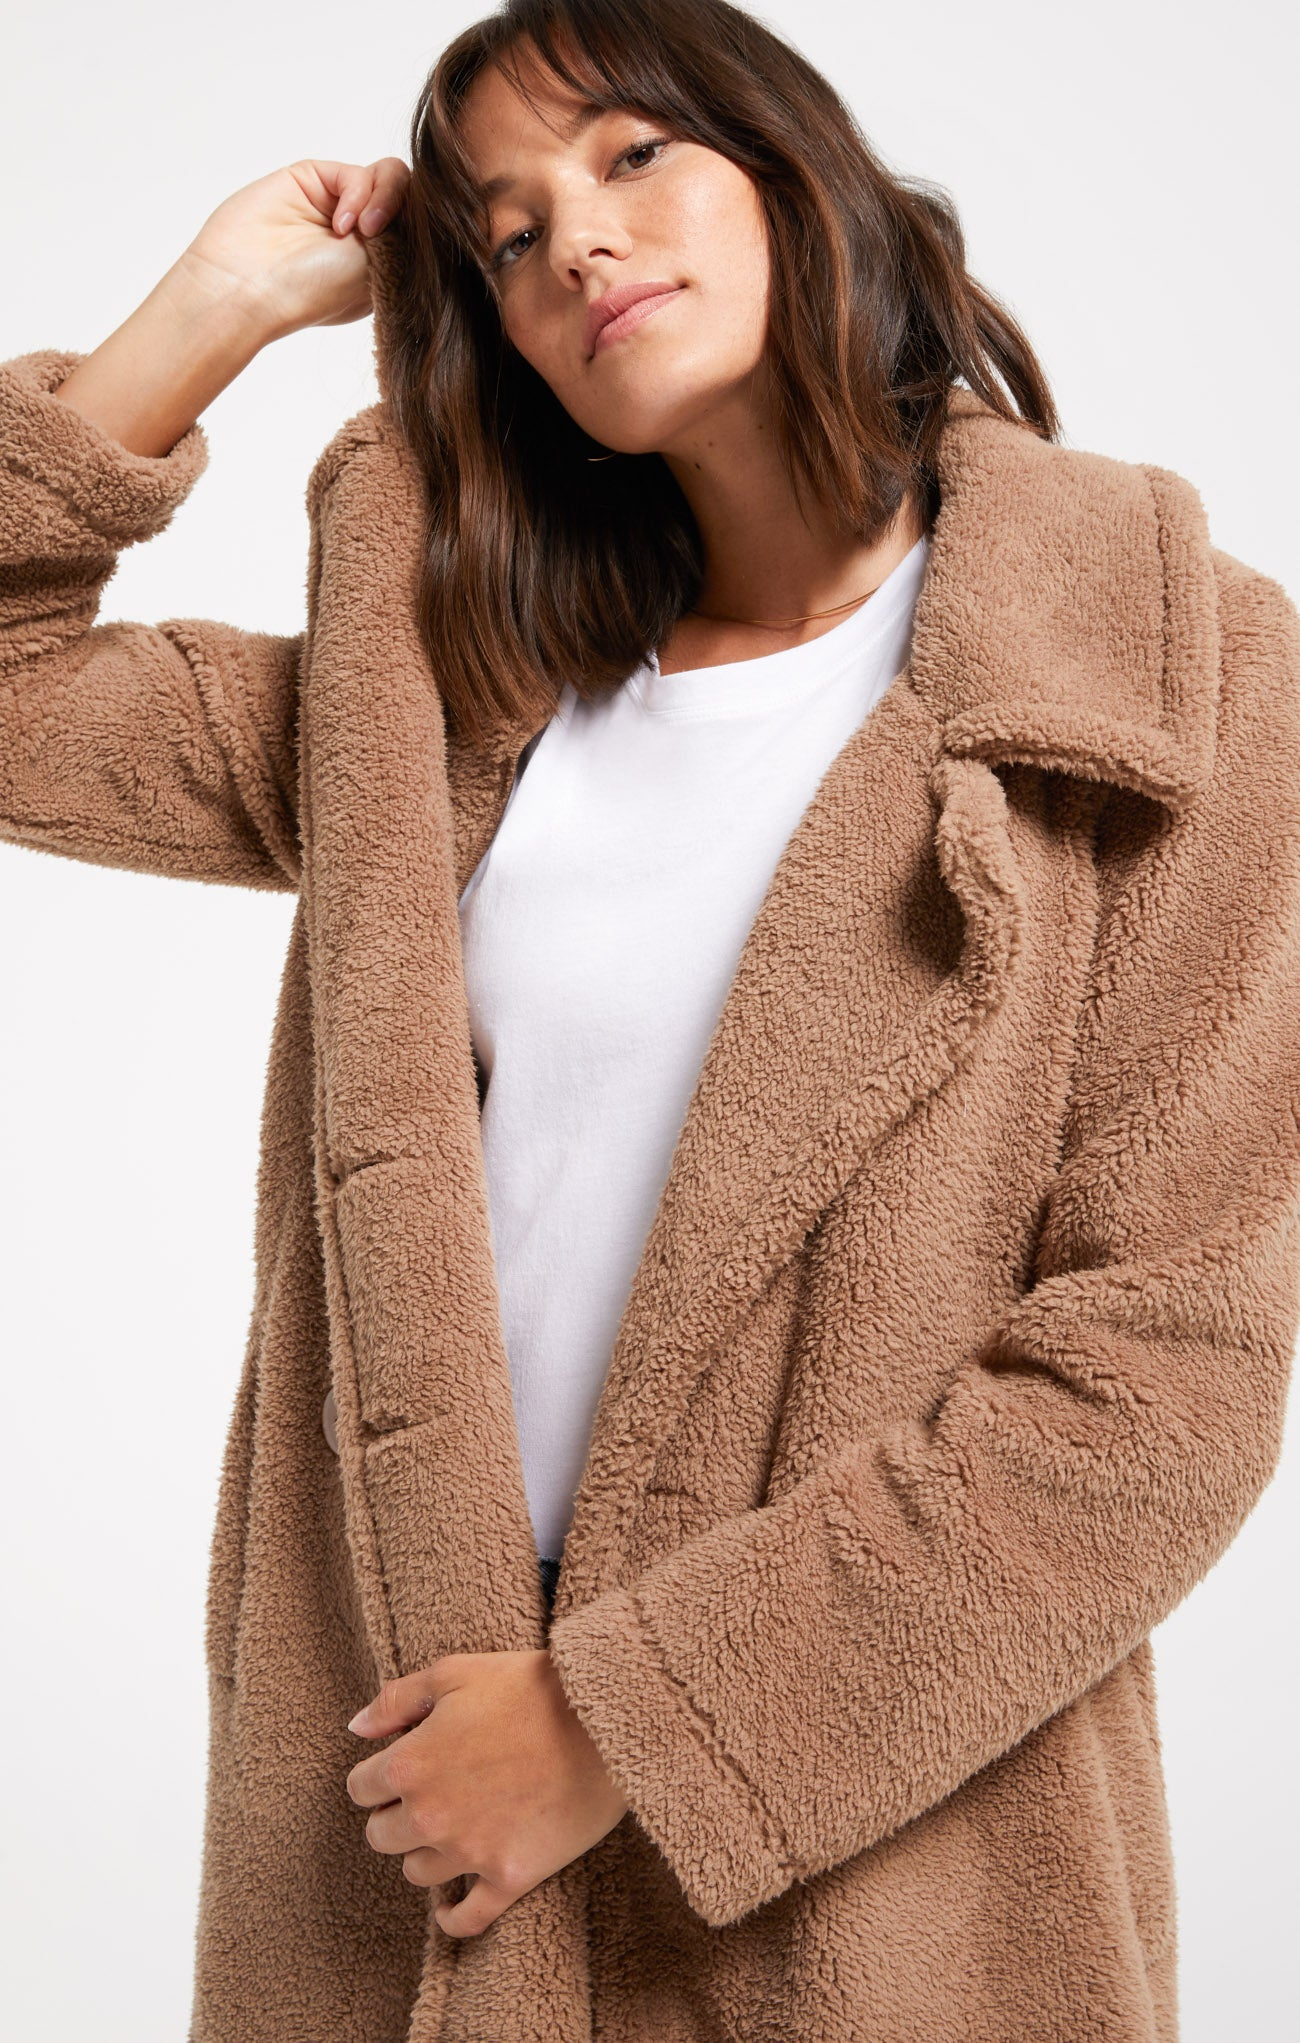 Coats Cozy Sherpa Coat Cozy Sherpa Coat